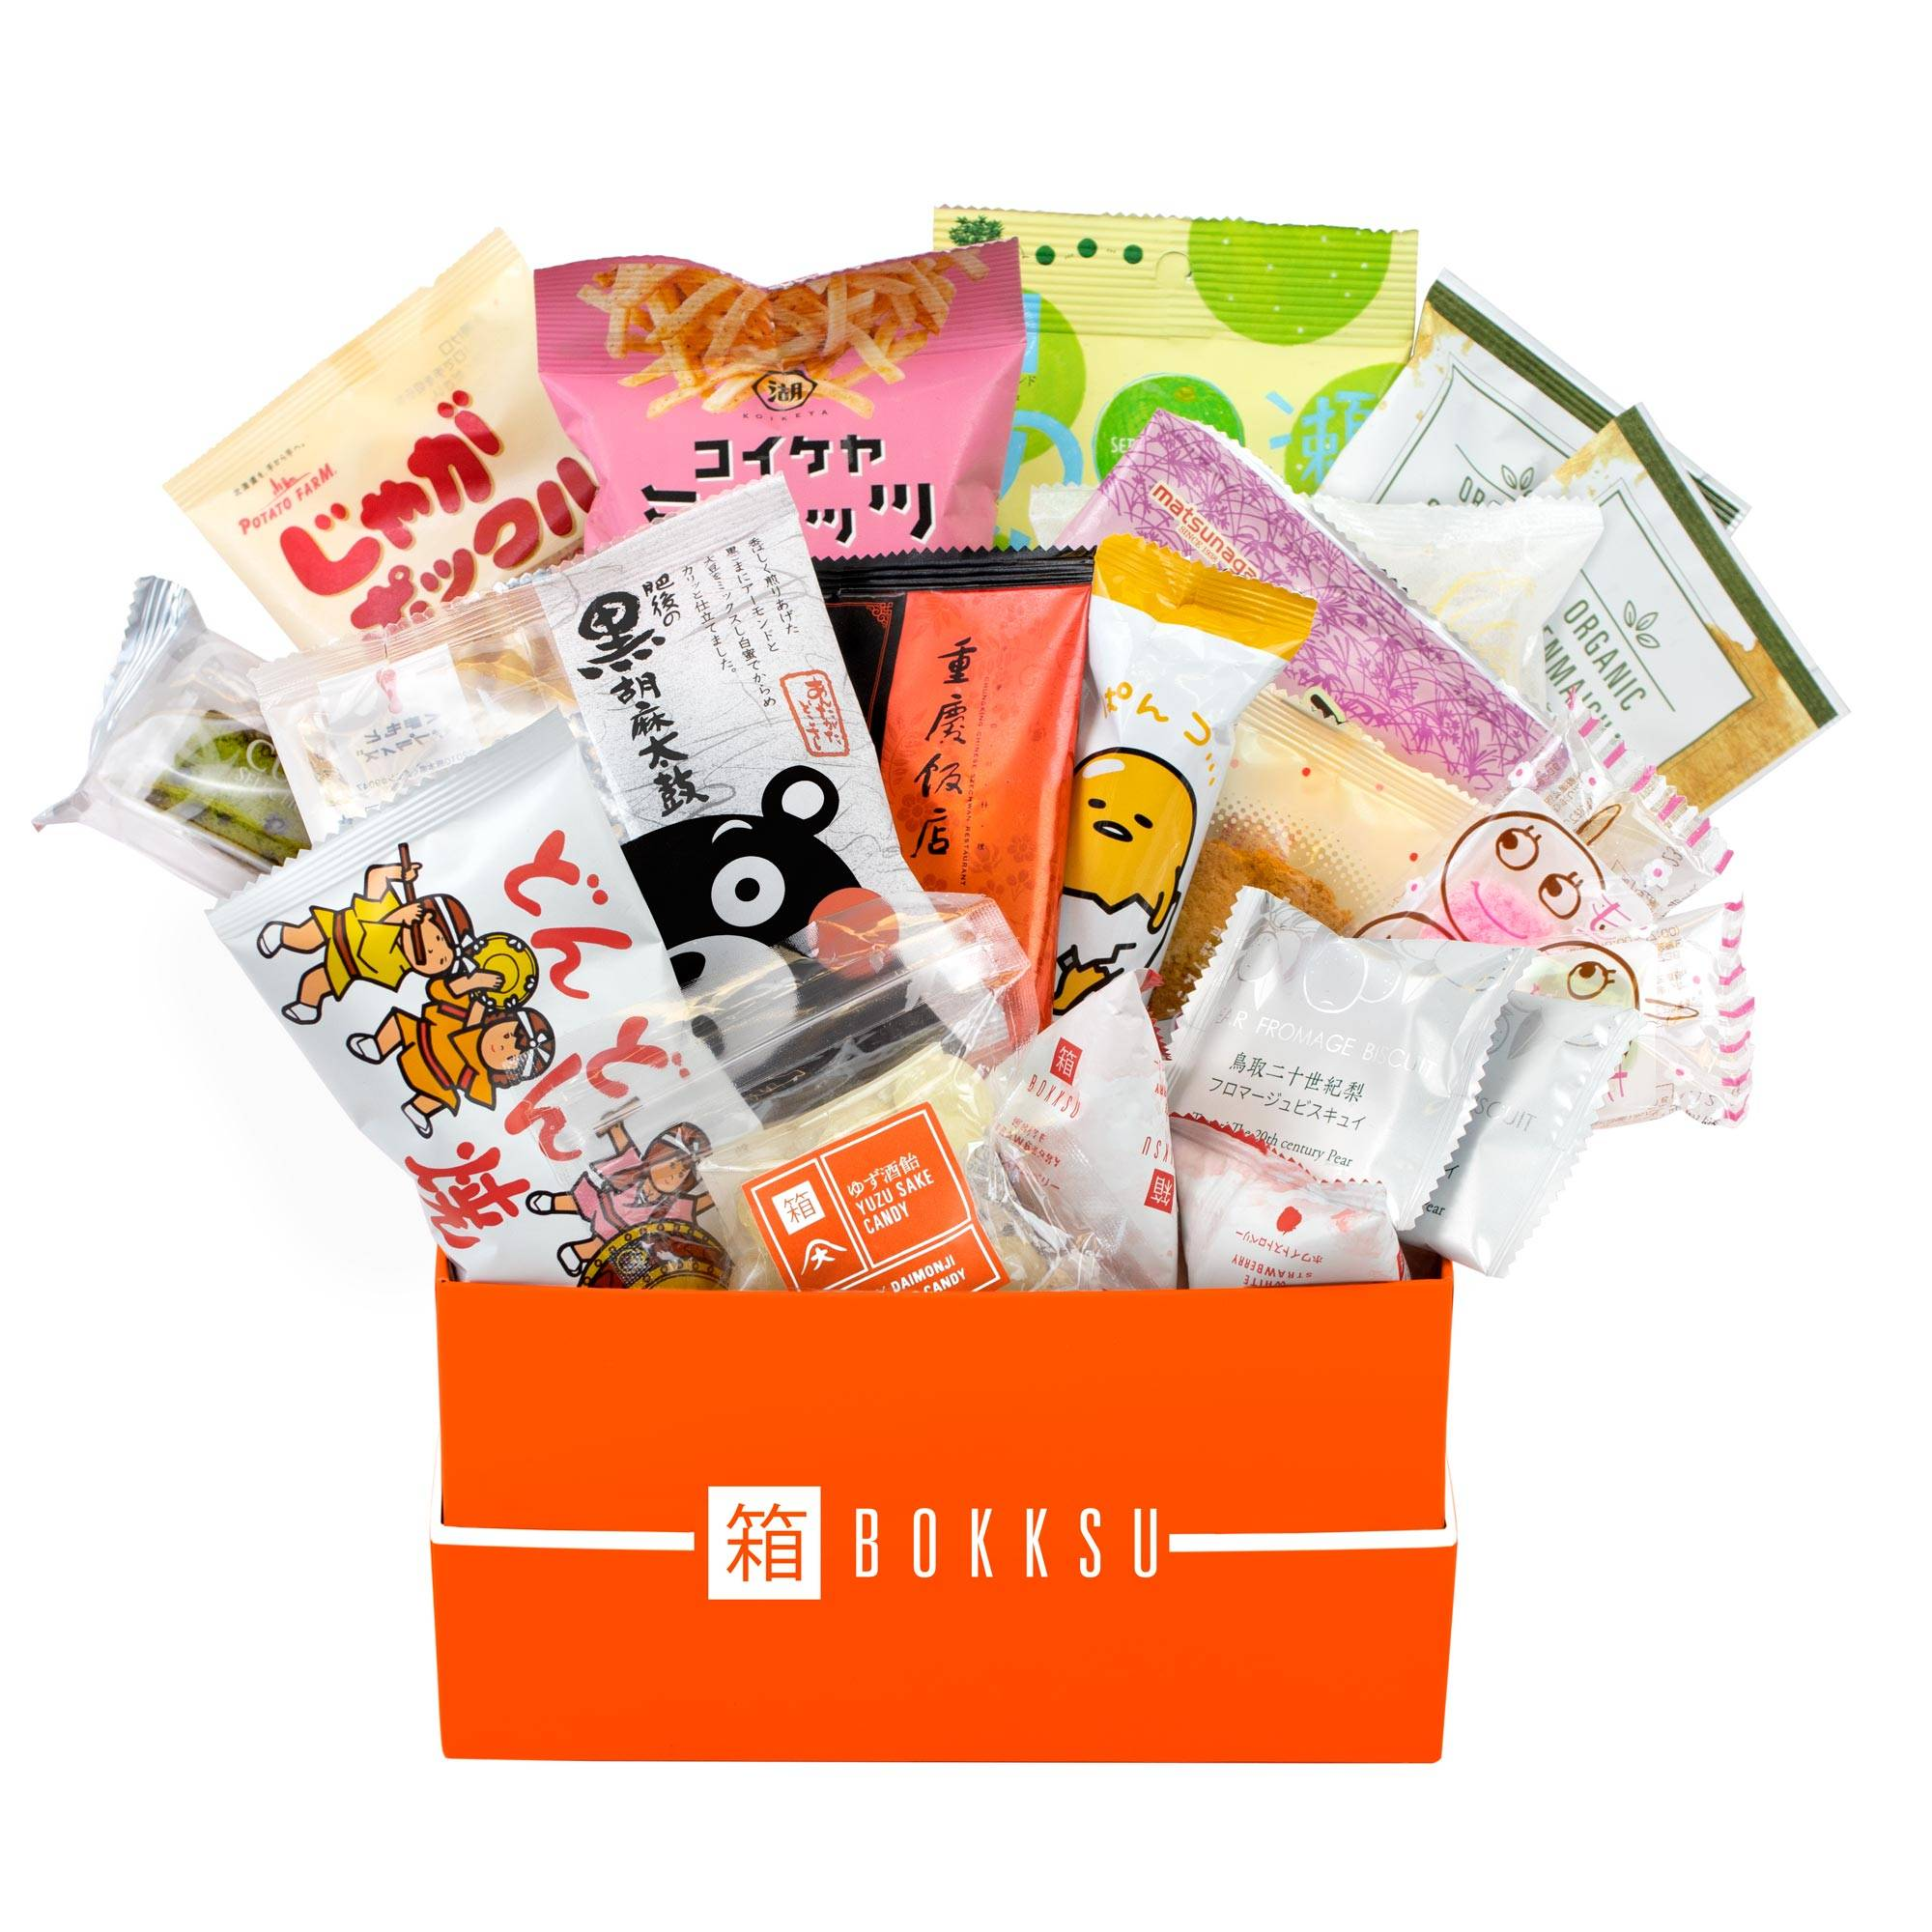 Bokksu subscription box - best Japanese snacks